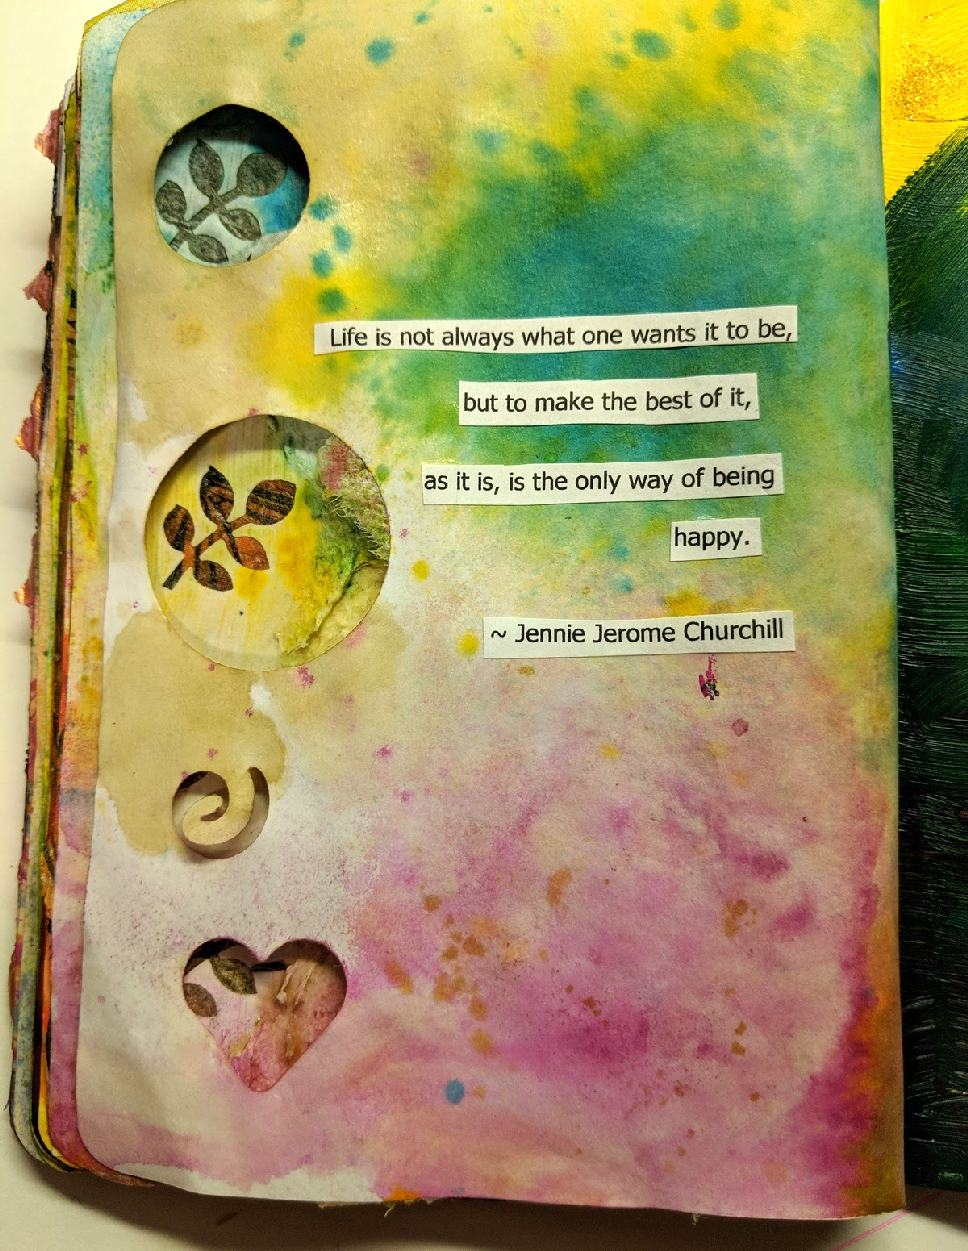 55: The Sketchbook Project